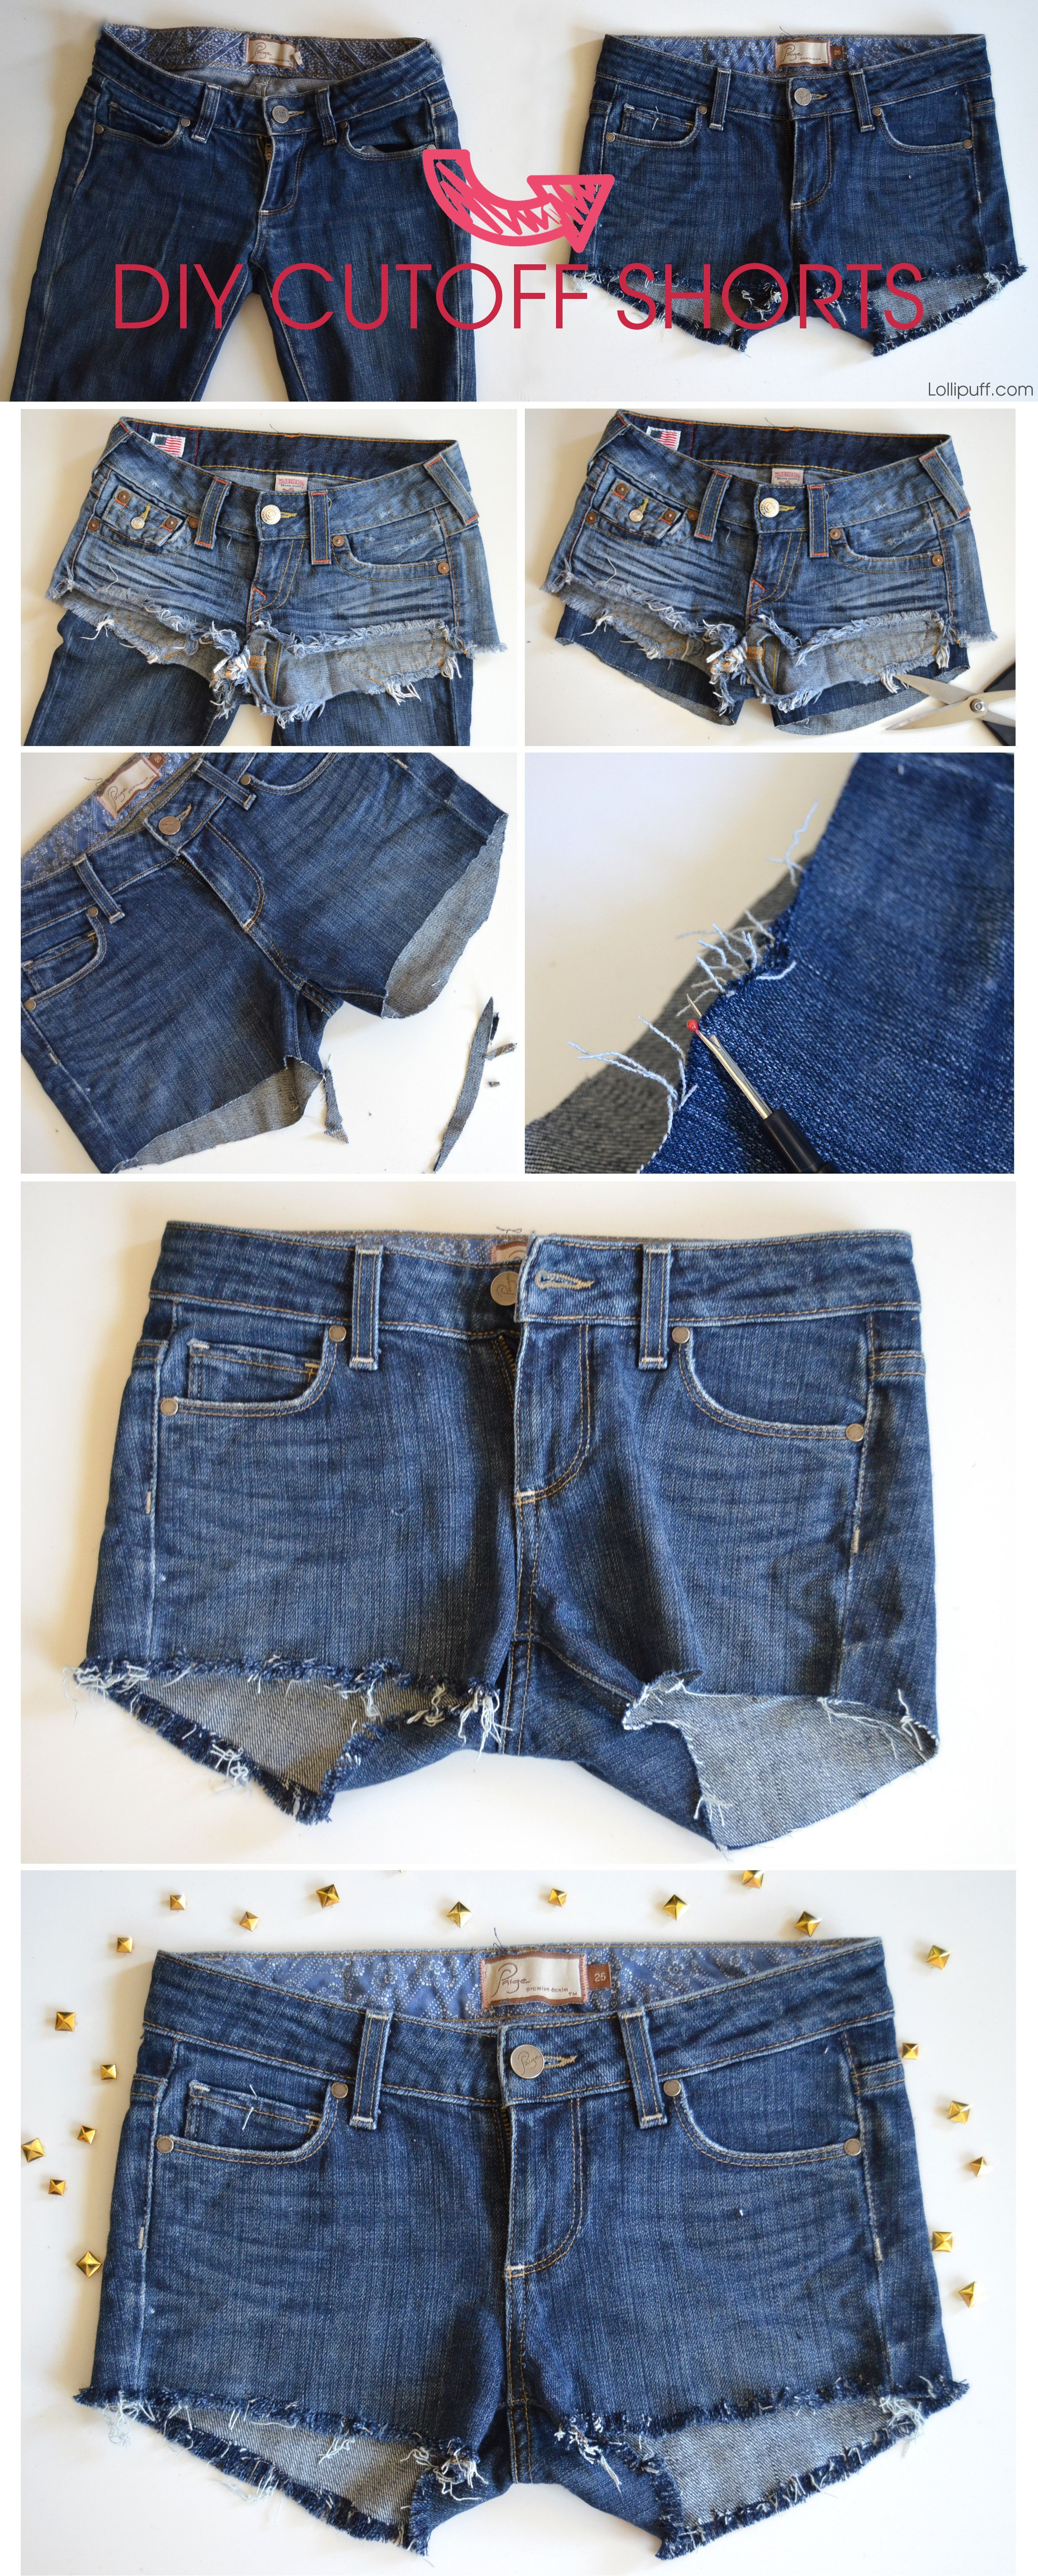 20 Creative DIY Ways To Transform Your Old Jeans For ...